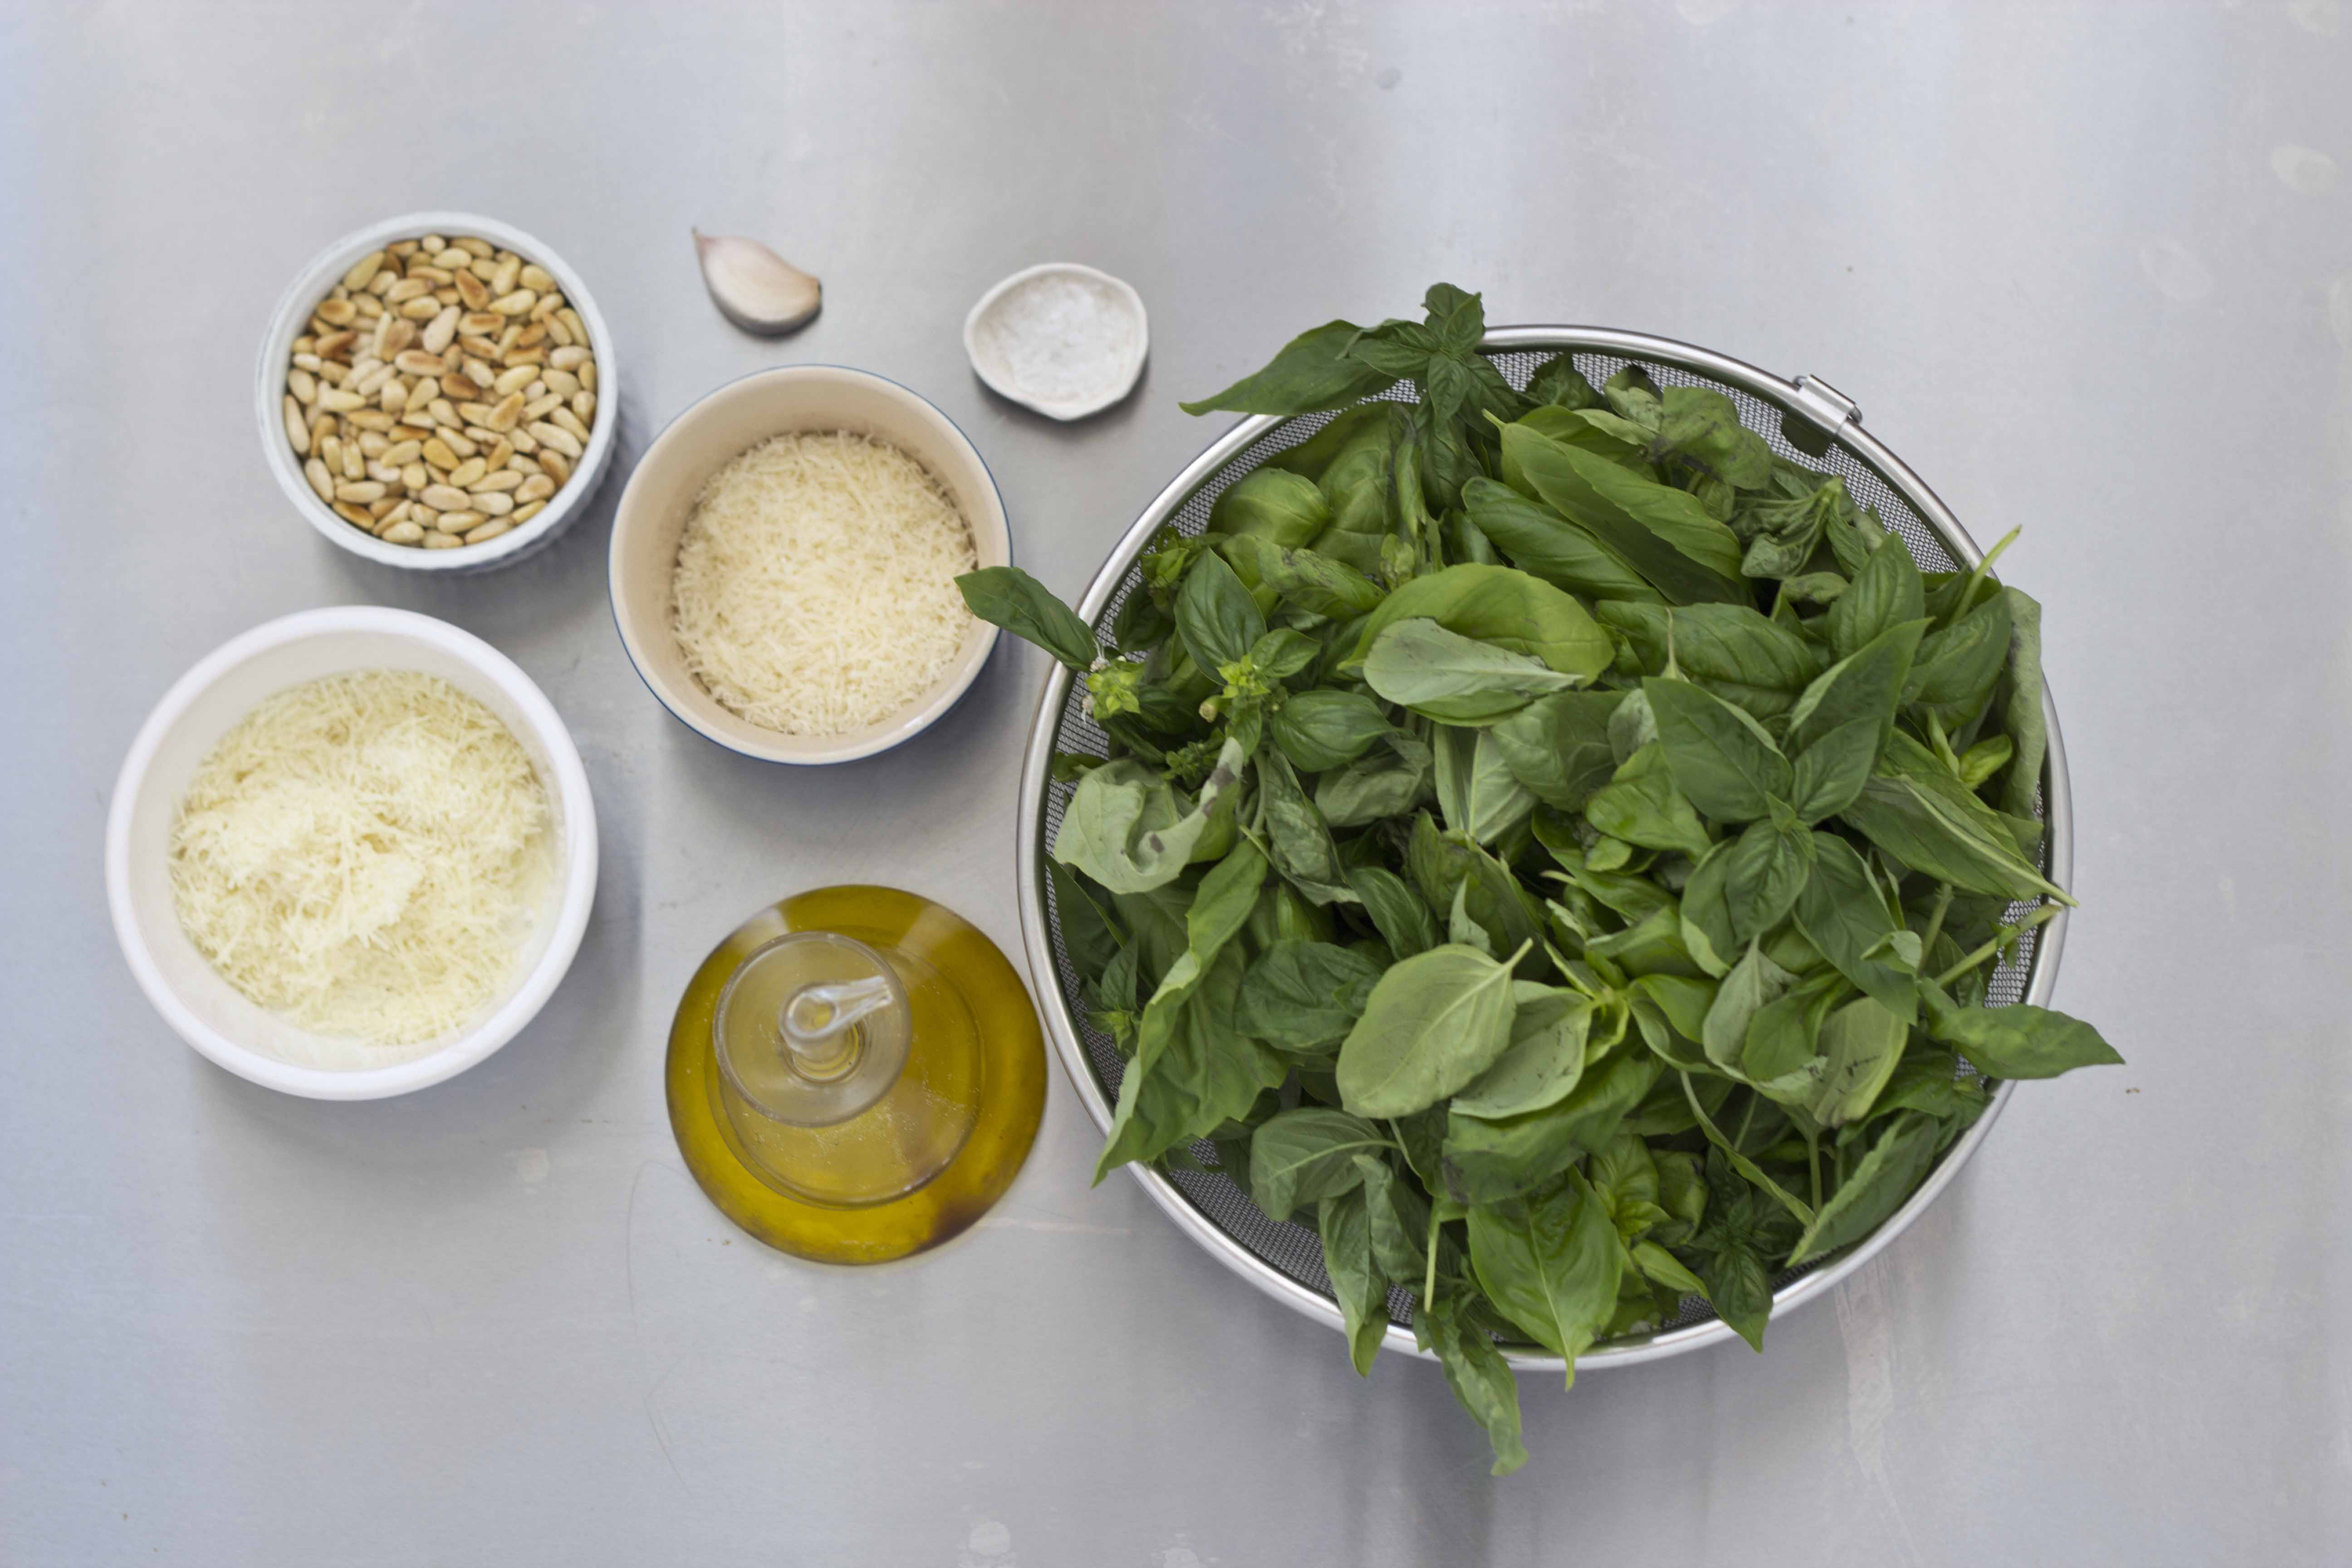 A Simple Authentic Recipe For Pesto Sauce From Liguria Incomparable To Store Bought Living A Life In Colour